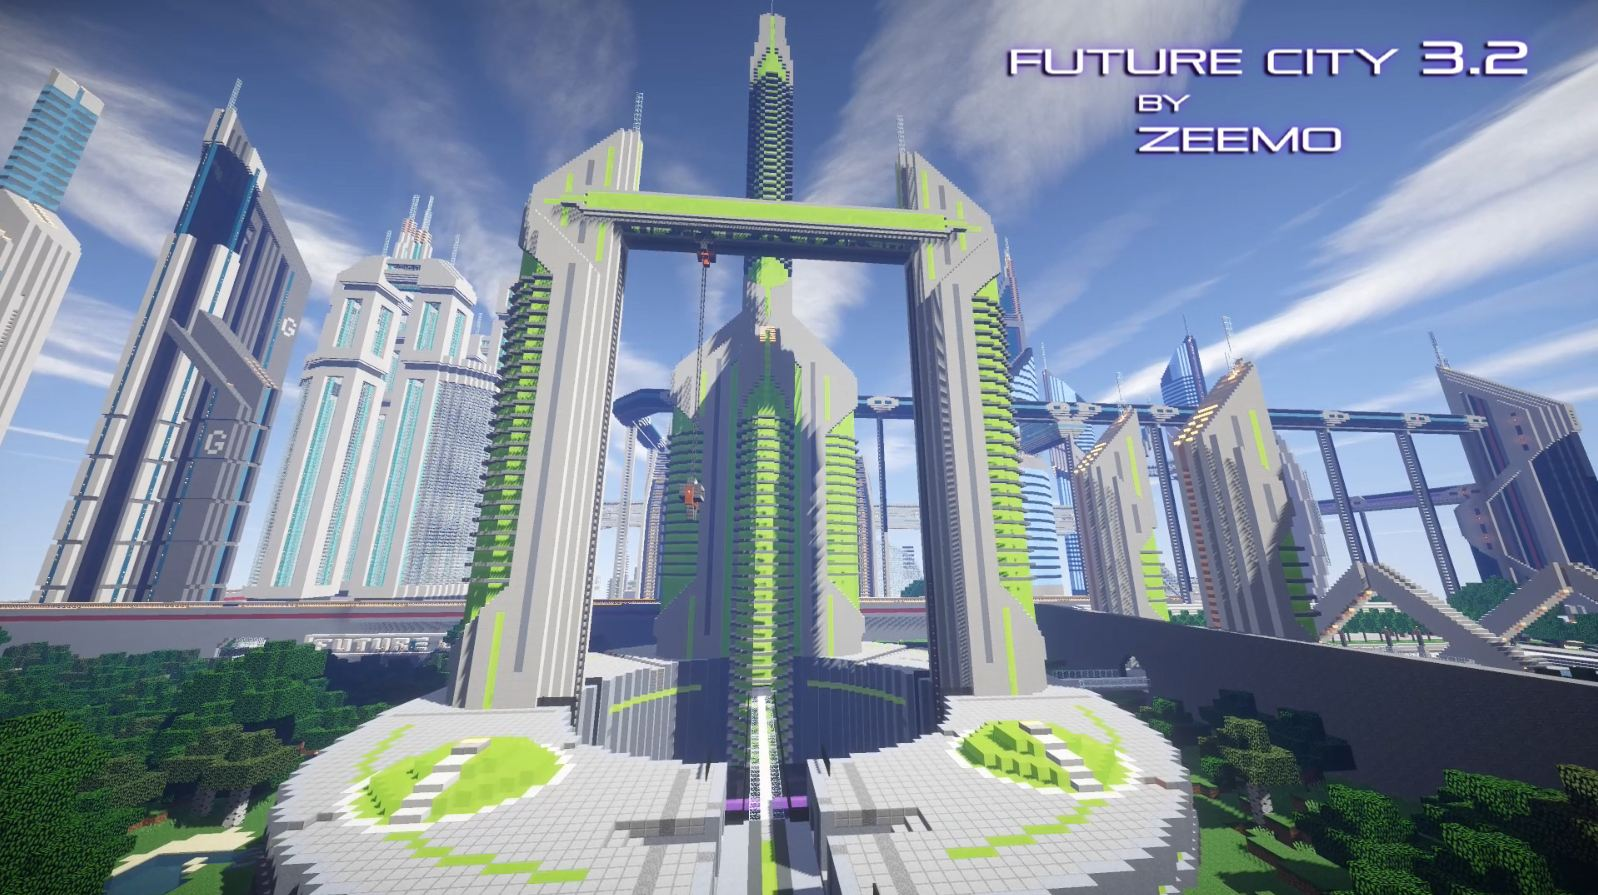 minecraft map ville future city 3.2 tour future